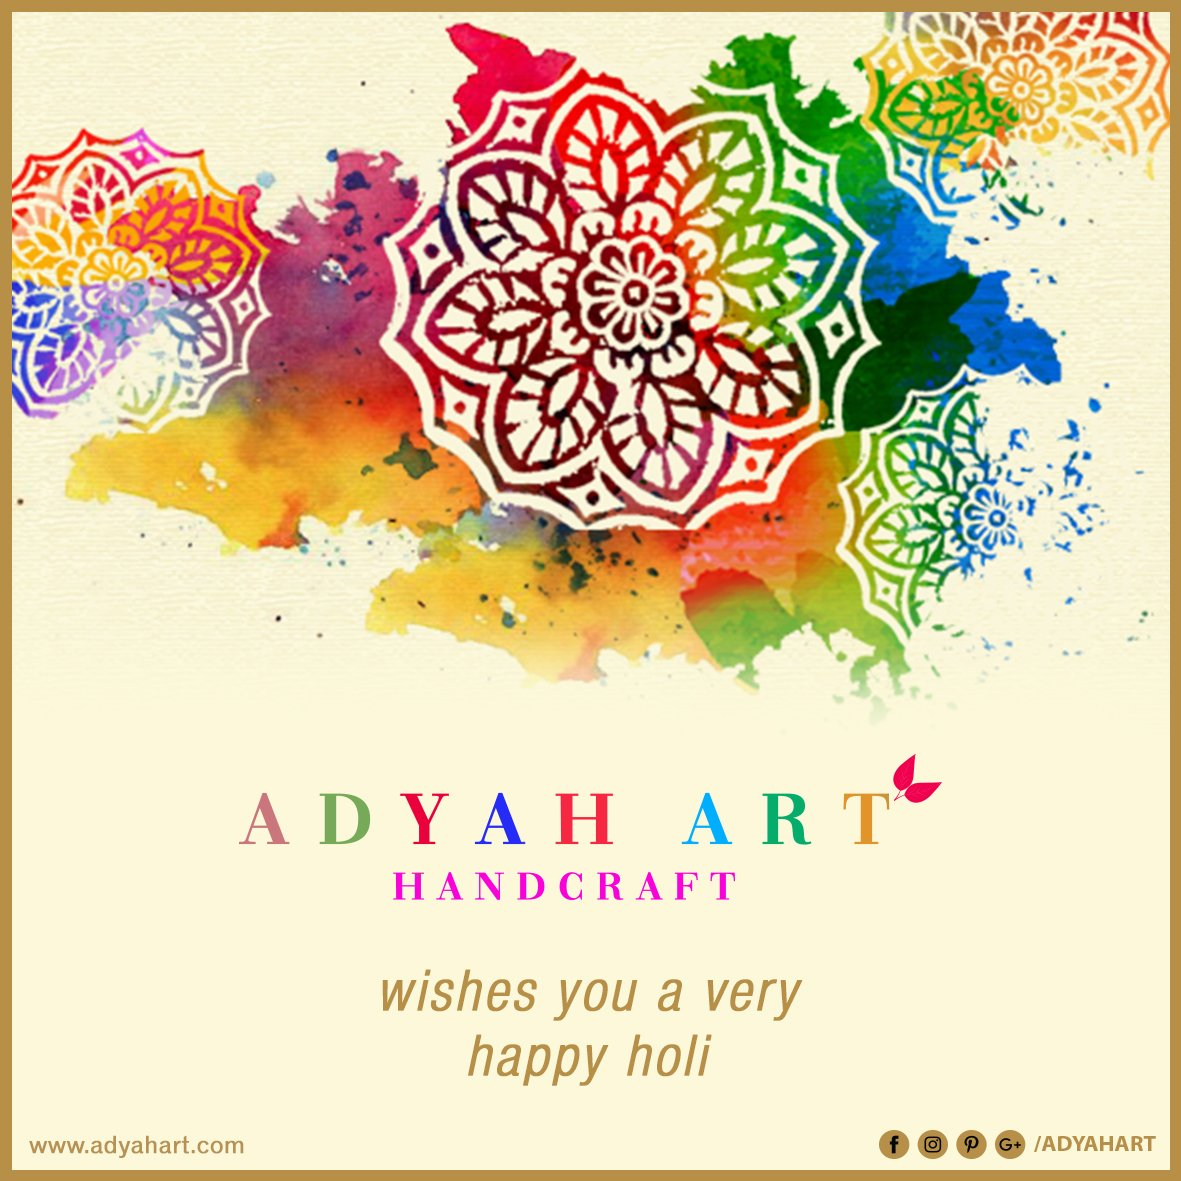 Adyah Art Handcraft wishes you a very Happy Holi #happyholi #holi2019 #happyholi2019 #AdyahArt #CustomDesigns #Handcraft #Brass #Metal #hotel #house #interior #exterior Call Us or Whatsapp @ 09871220066, 09891220066 Adyah Art Handcraft http://www.adyahart.com